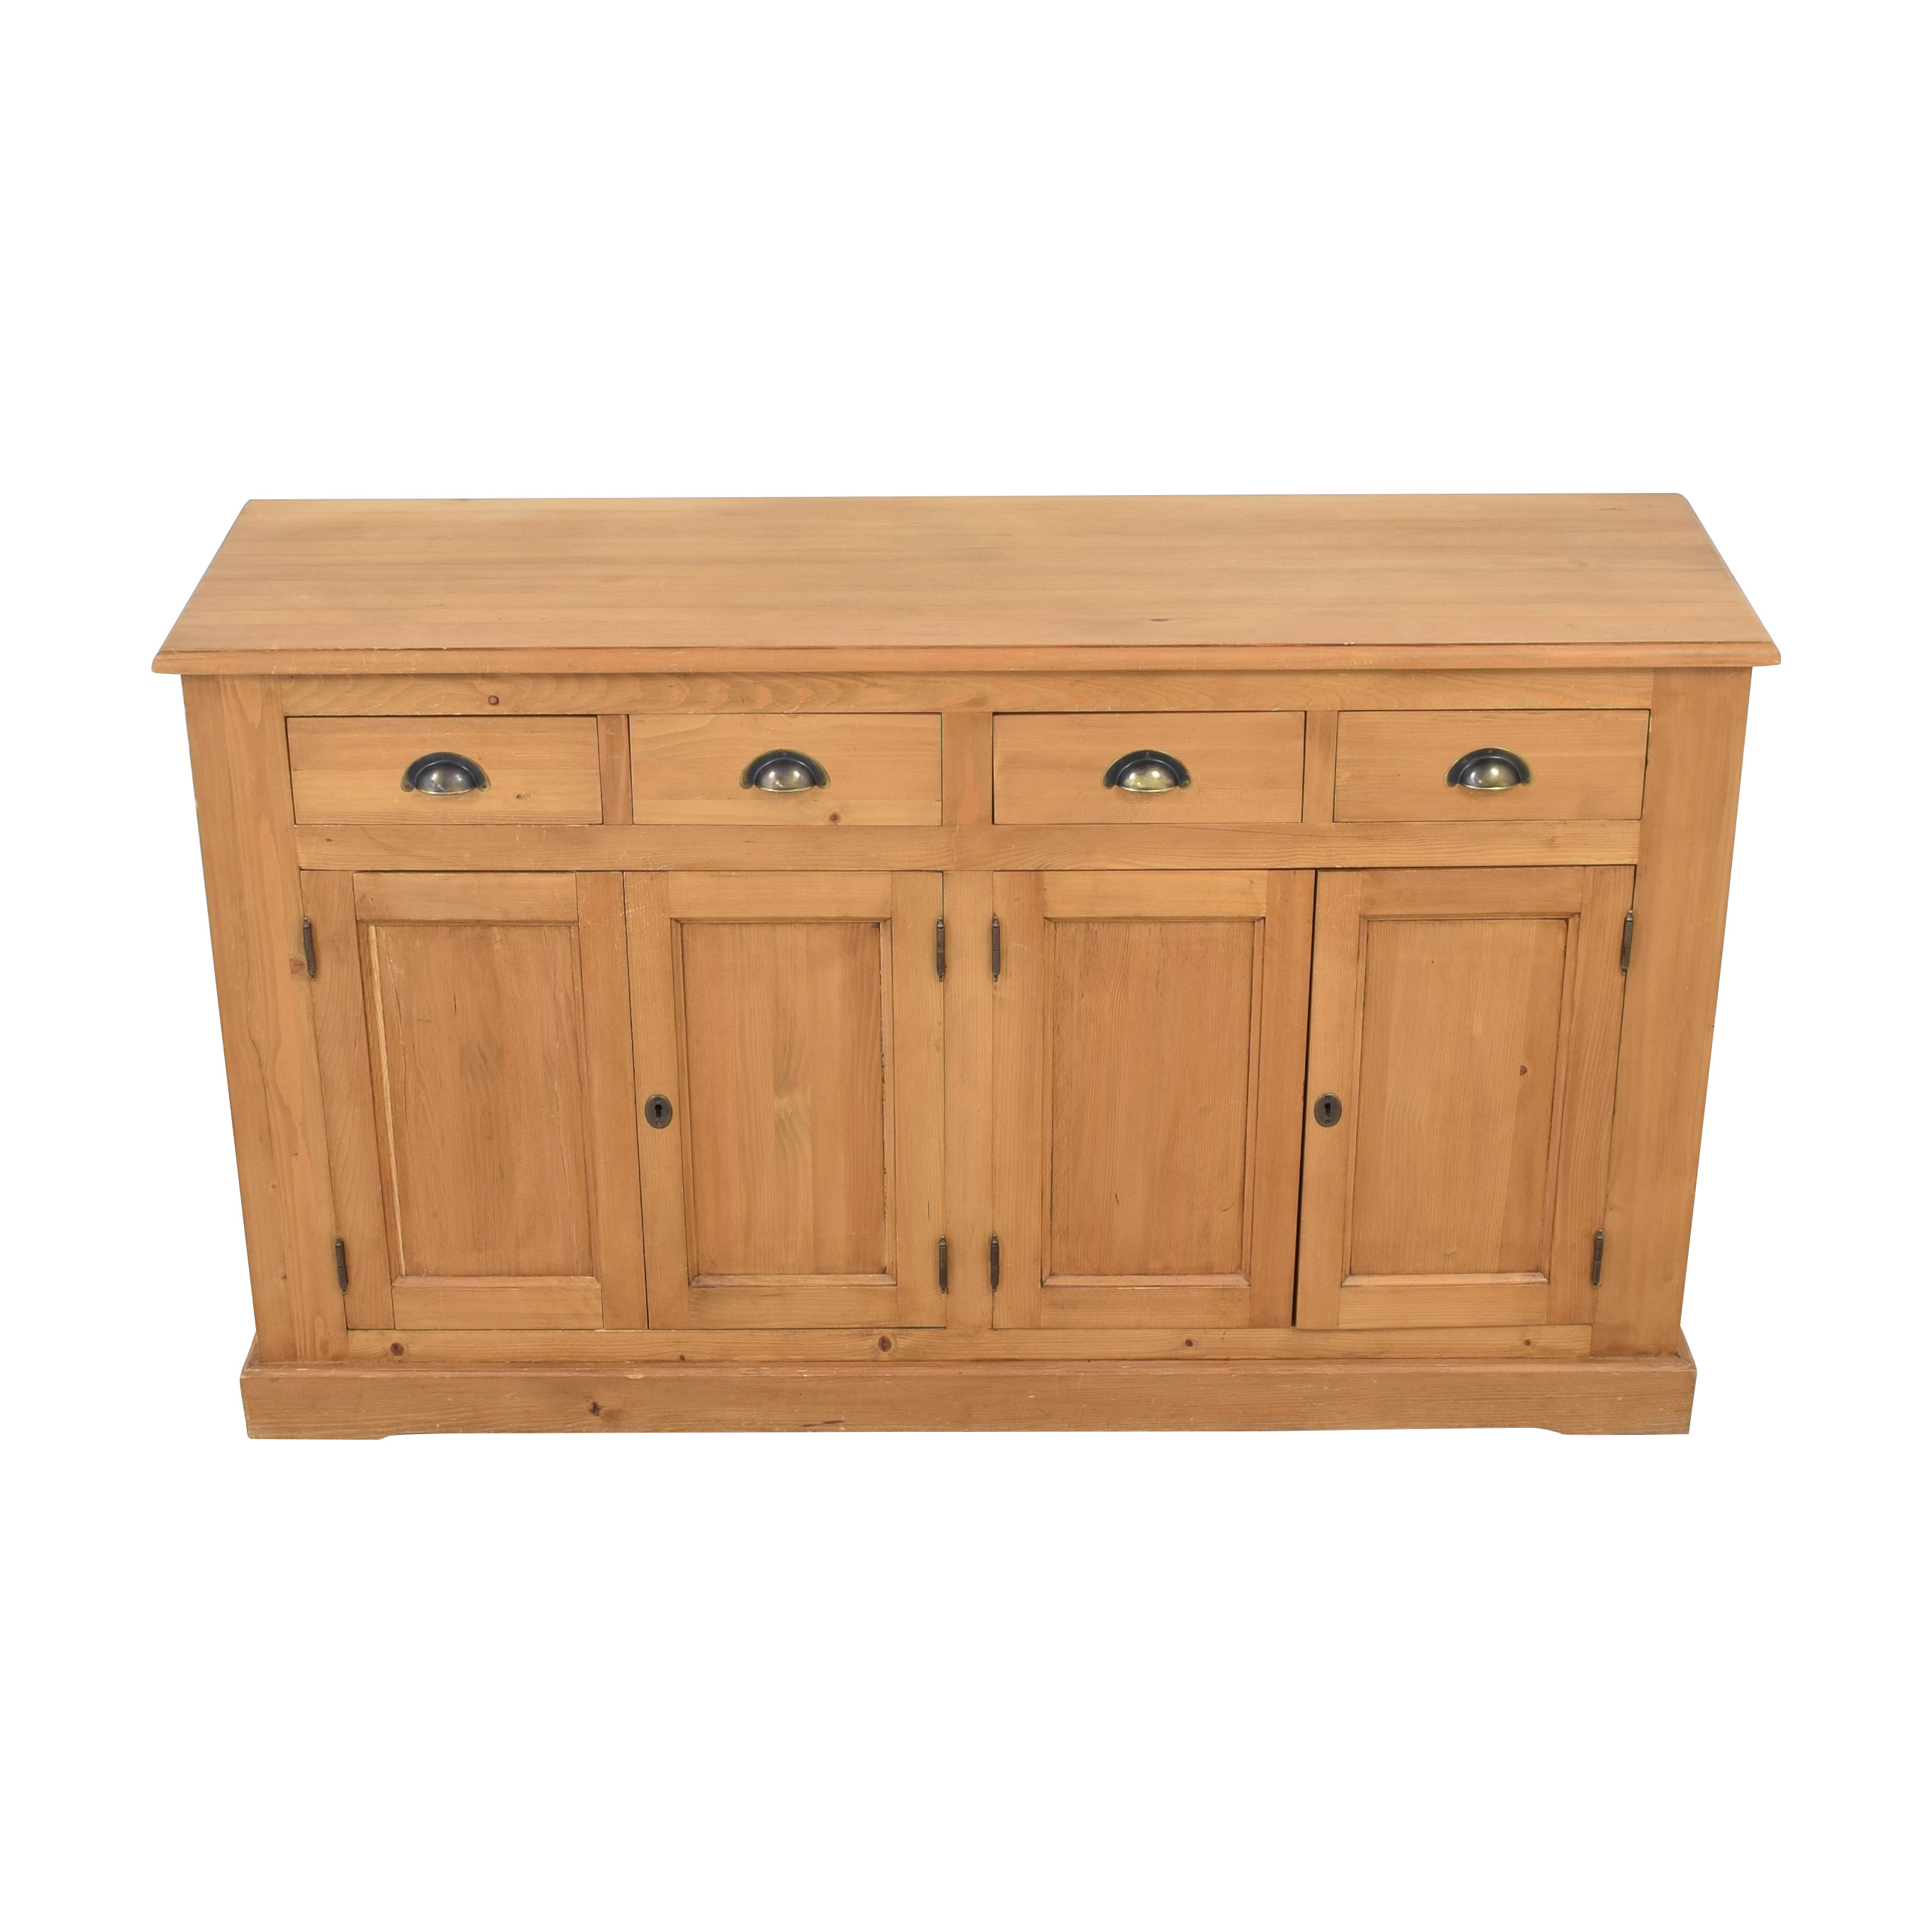 Wooden Cabinet with Four Drawers second hand